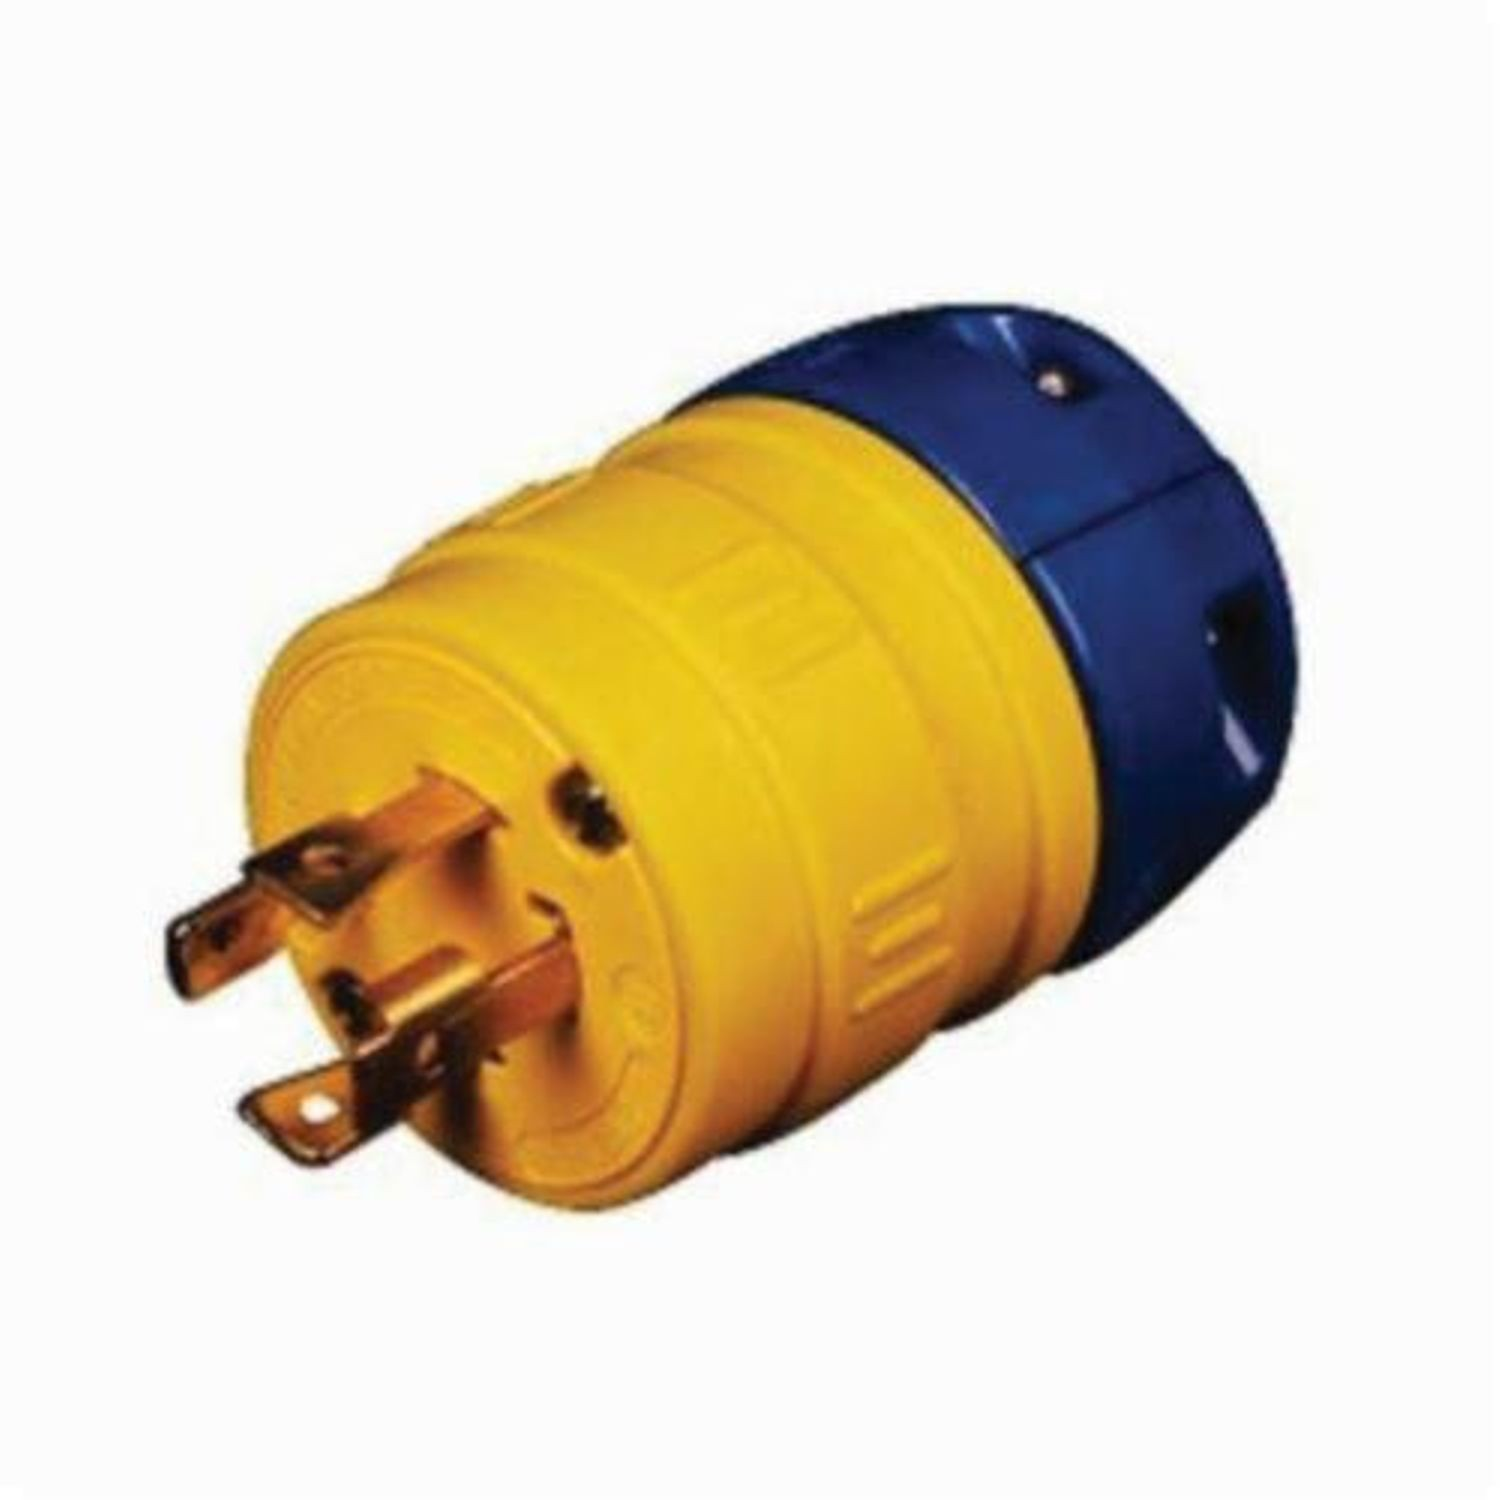 hight resolution of perma link 2524 p locking plug 480 vac 30 a 3 poles 4 wires yellow state electric